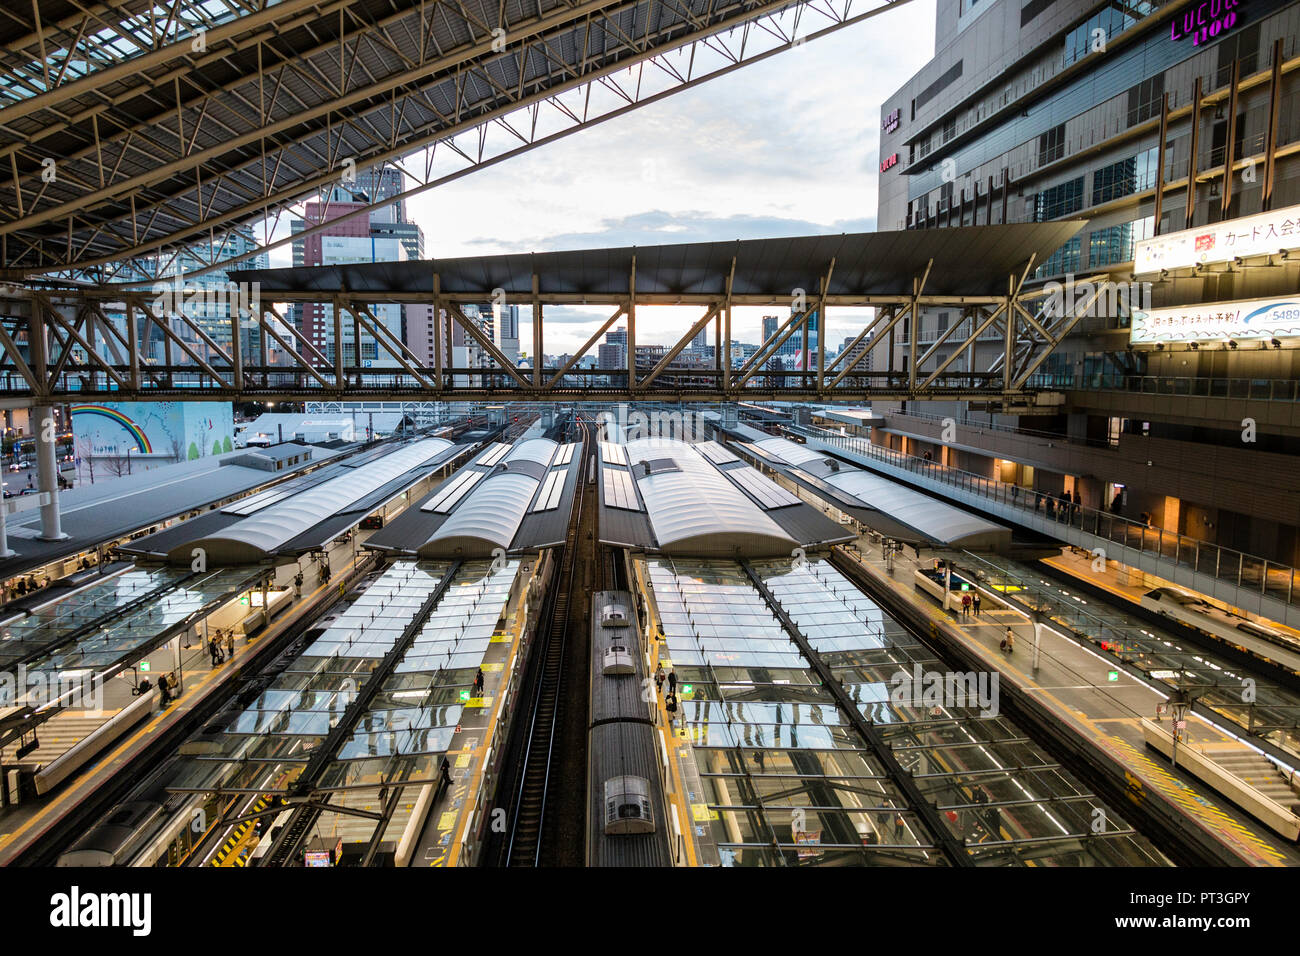 Osaka Station City. High angle view over the platforms and tracks with trains waiting at platforms. Early evening, platforms illuminated. - Stock Image